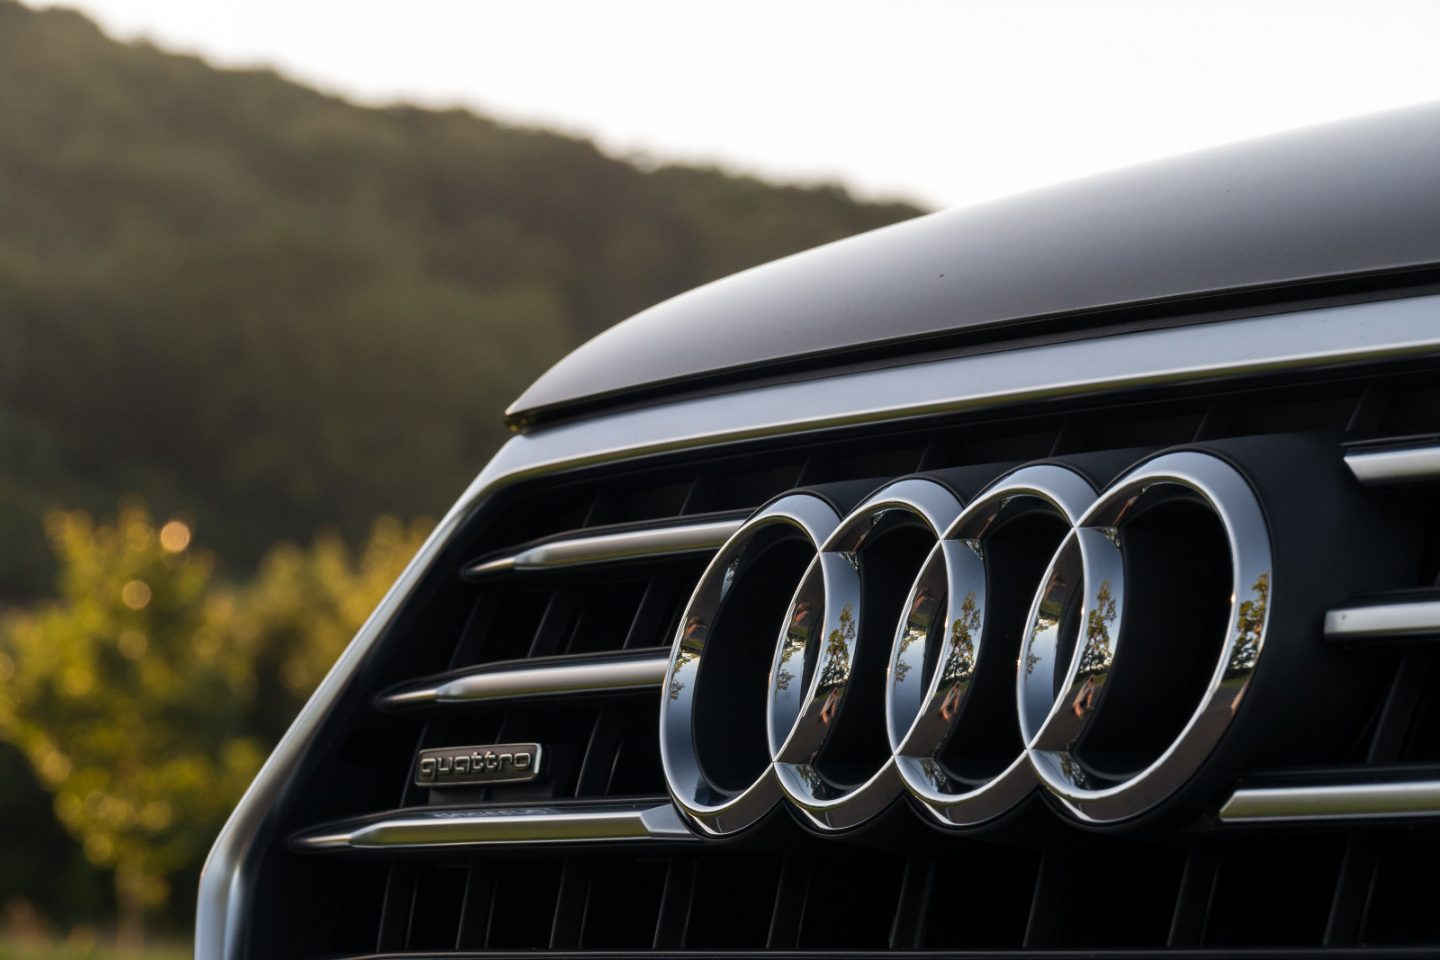 Audi's participatory culture drives its future